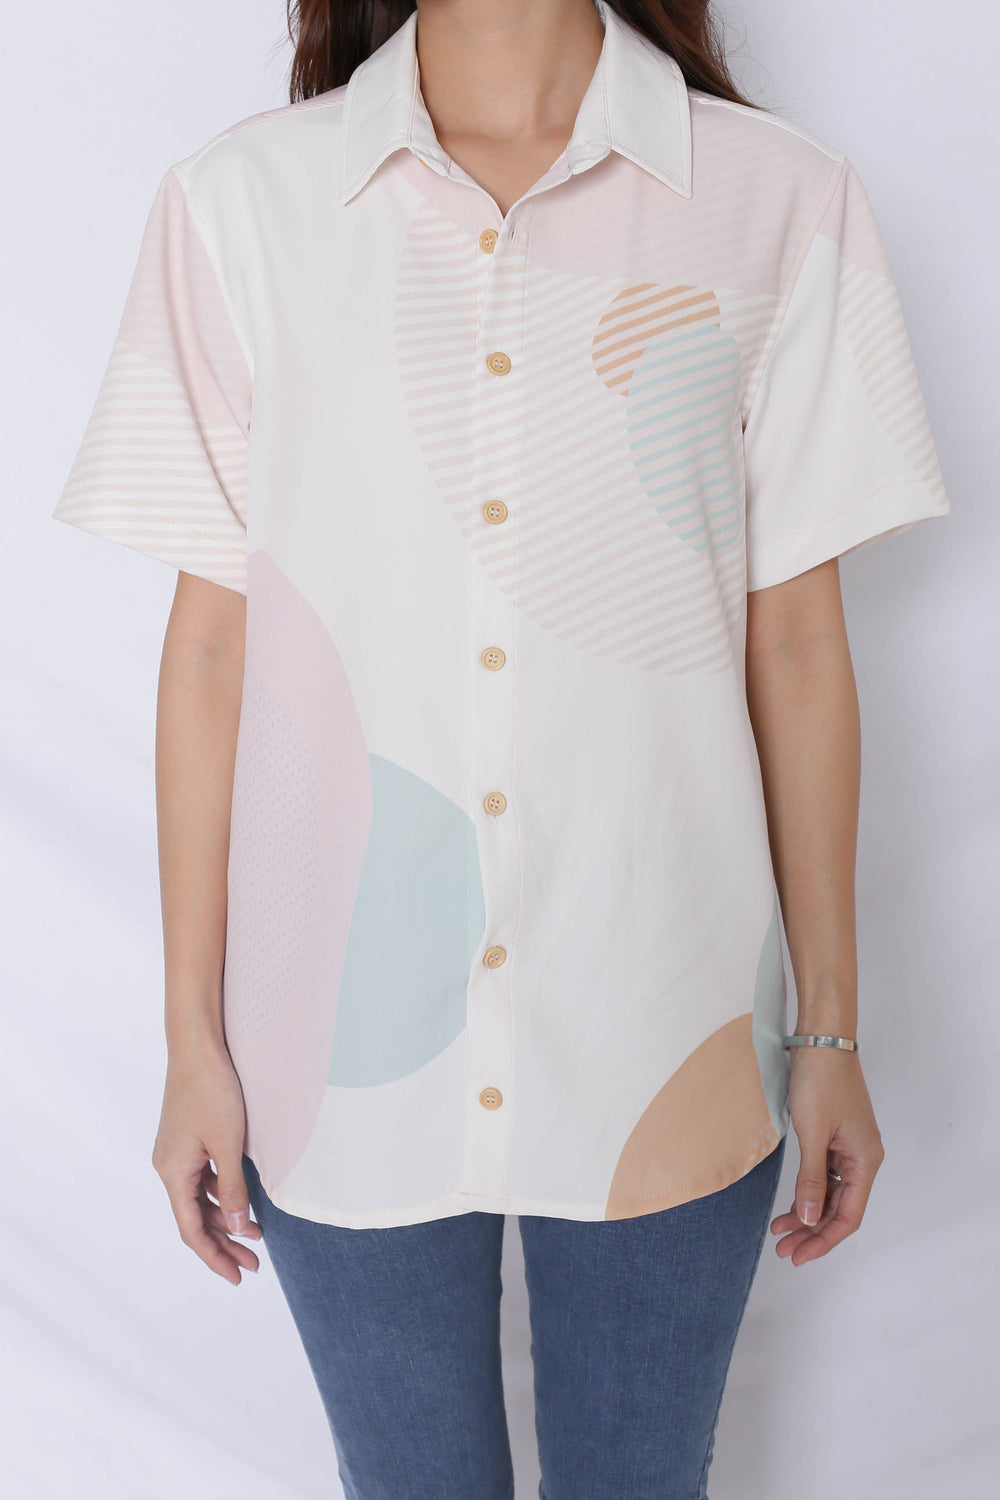 (PREMIUM) THE GEOMETRIC COLLECTION UNISEX SHIRT (VERSION 1) EARTH